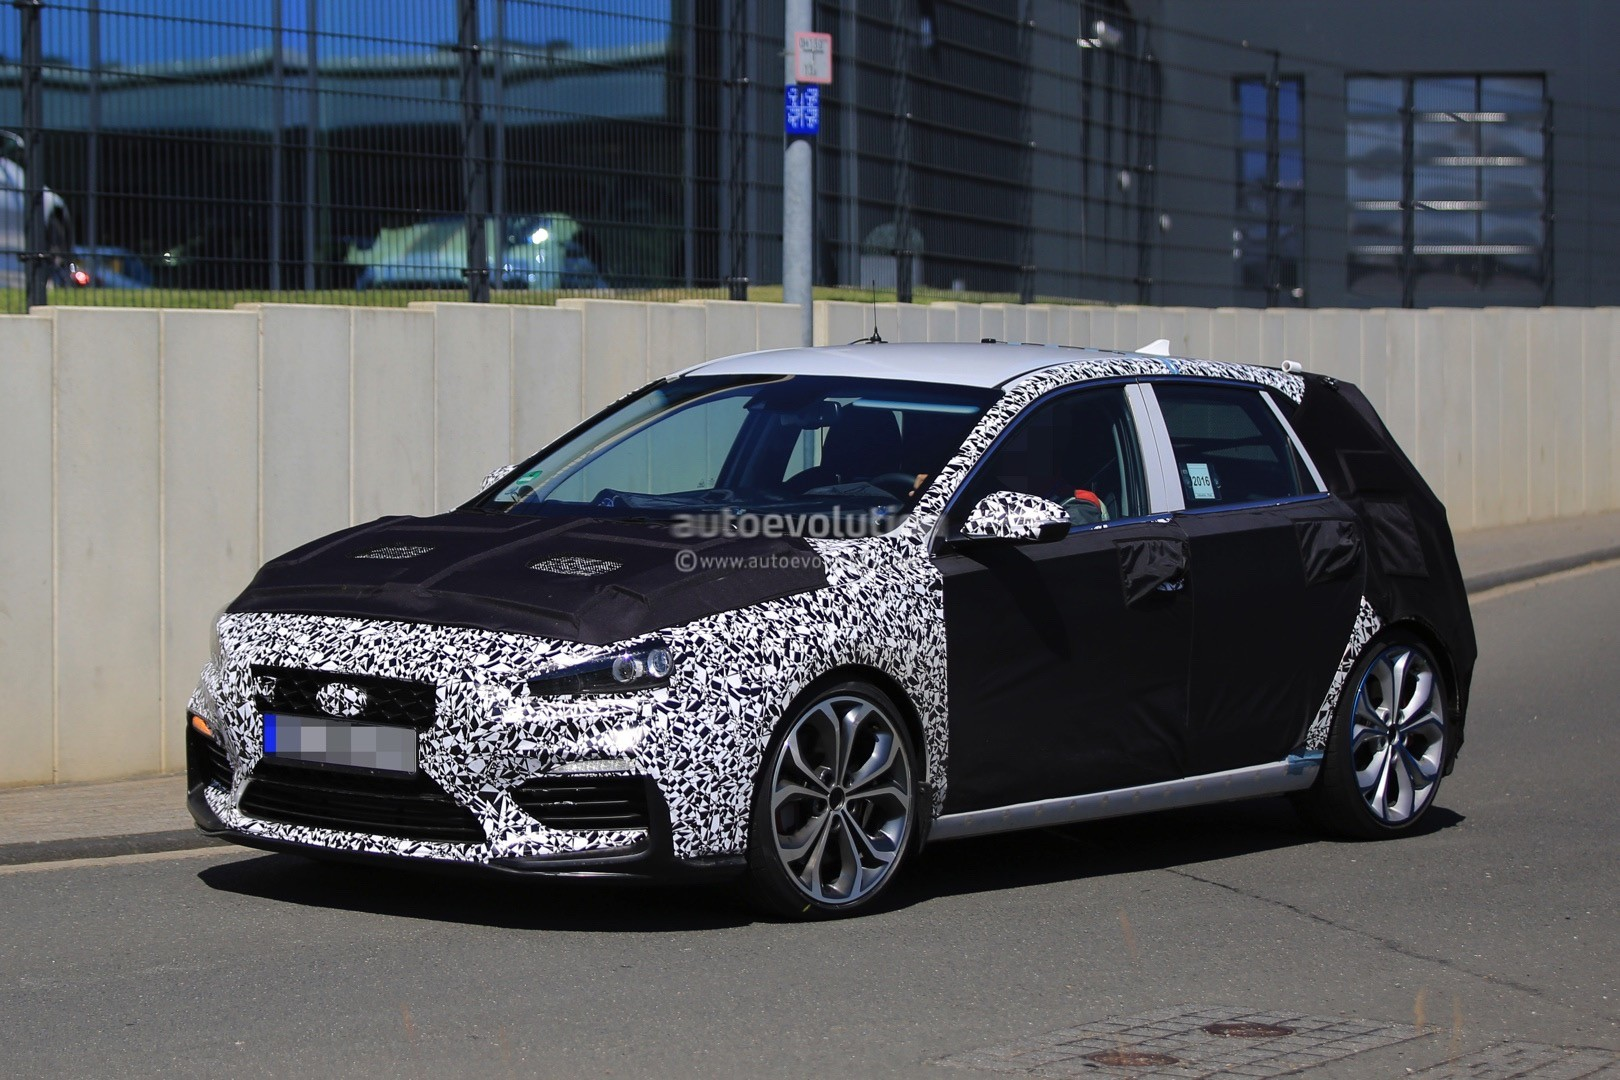 2017 hyundai i30 n shows more skin in latest spy shots autoevolution. Black Bedroom Furniture Sets. Home Design Ideas